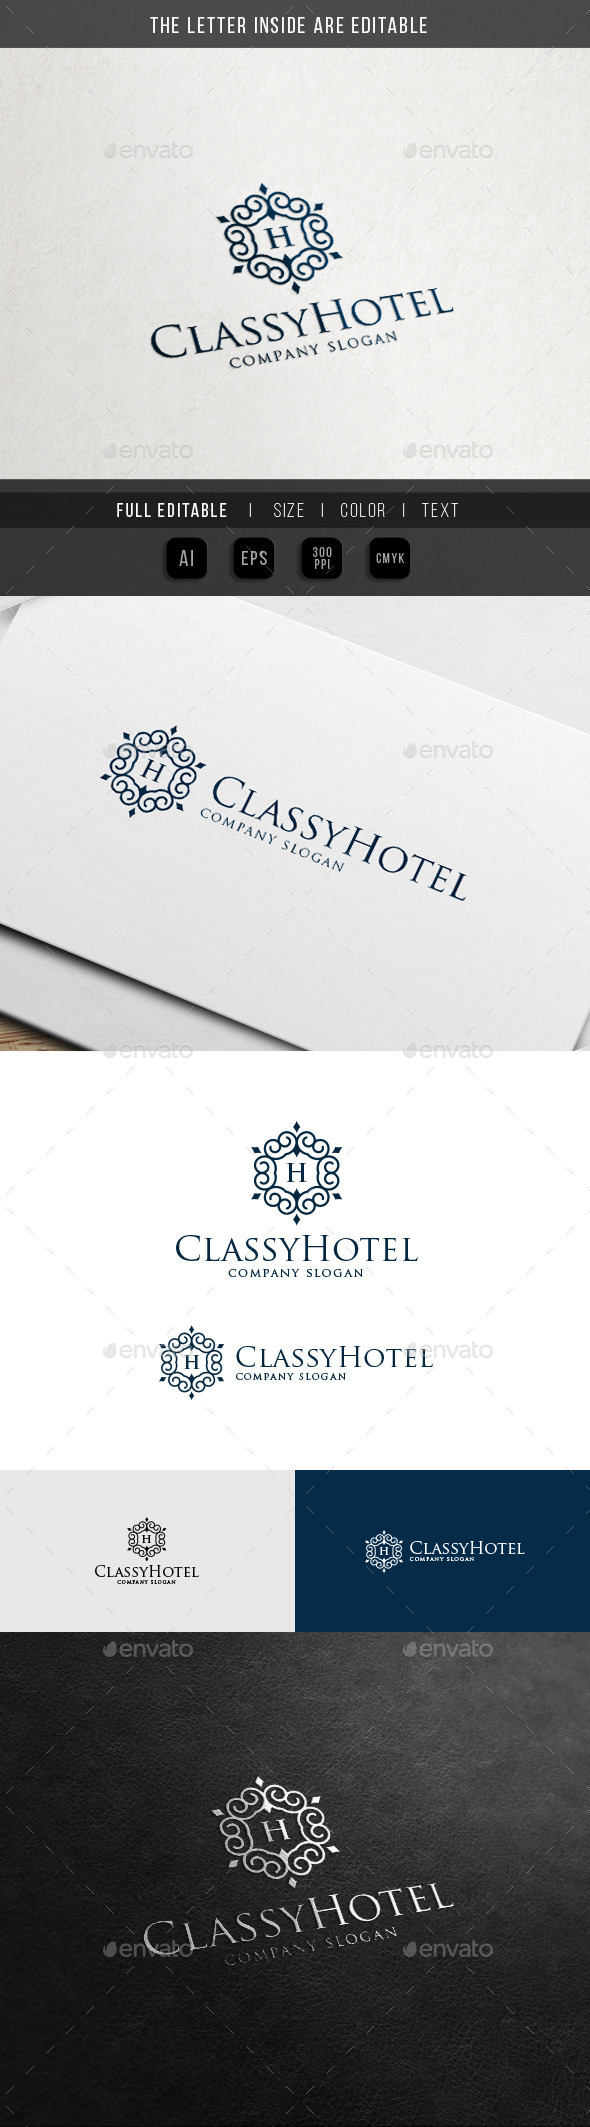 Royal Palace Hotel - Vintage Ornament Logo - Crests Logo Templates